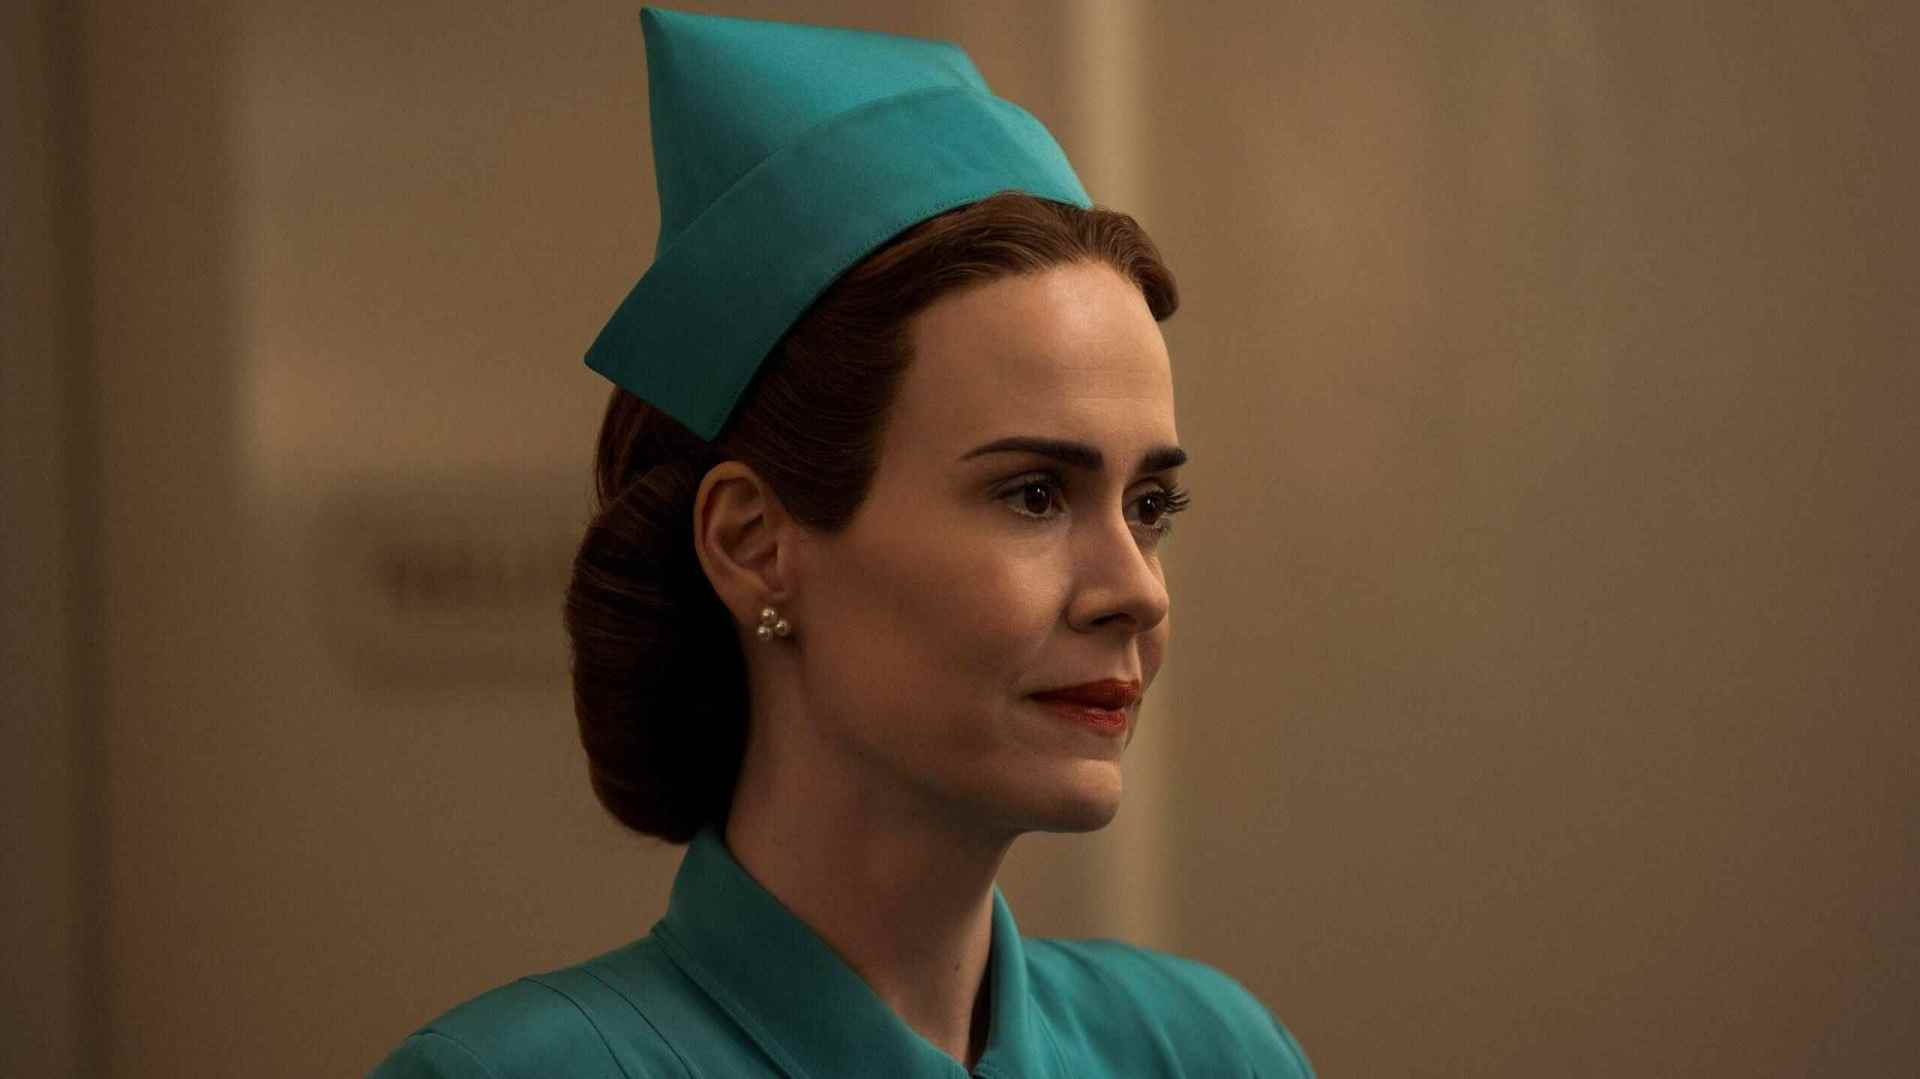 Nurse mildred ratched (TV Series) Analysis - Bouquet Of Twisted Characters